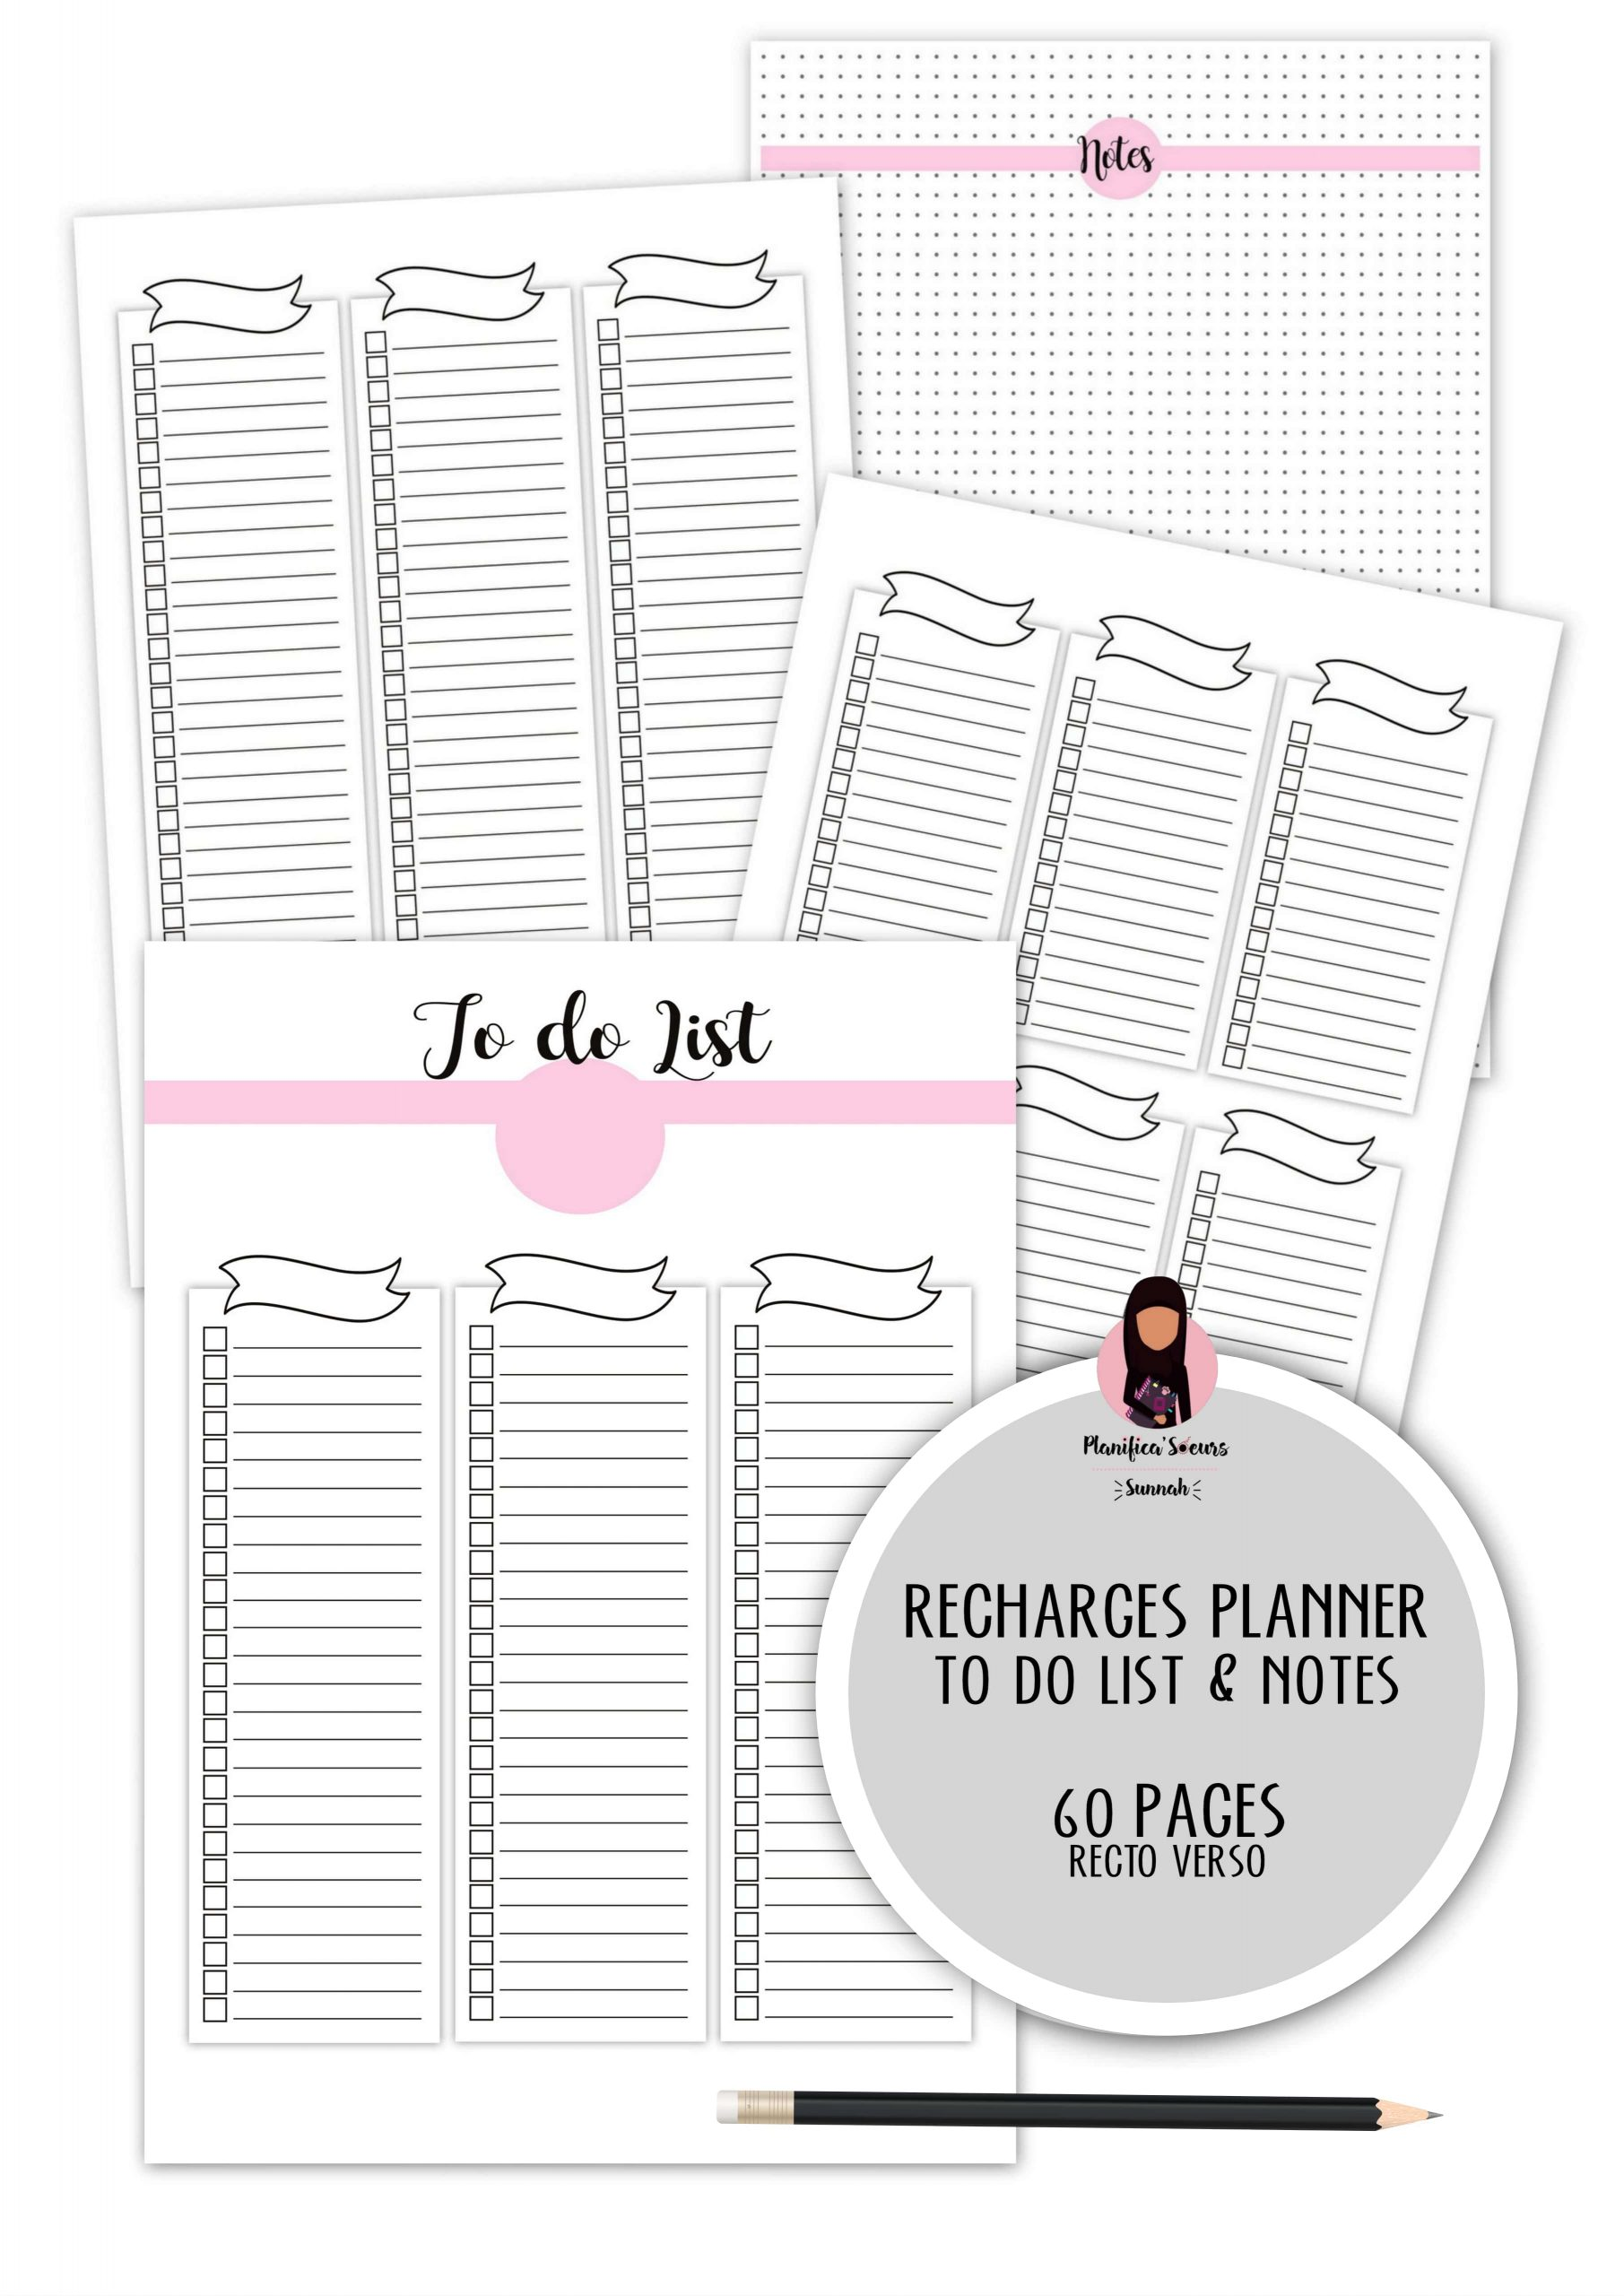 recharge planner to fo list check list notes